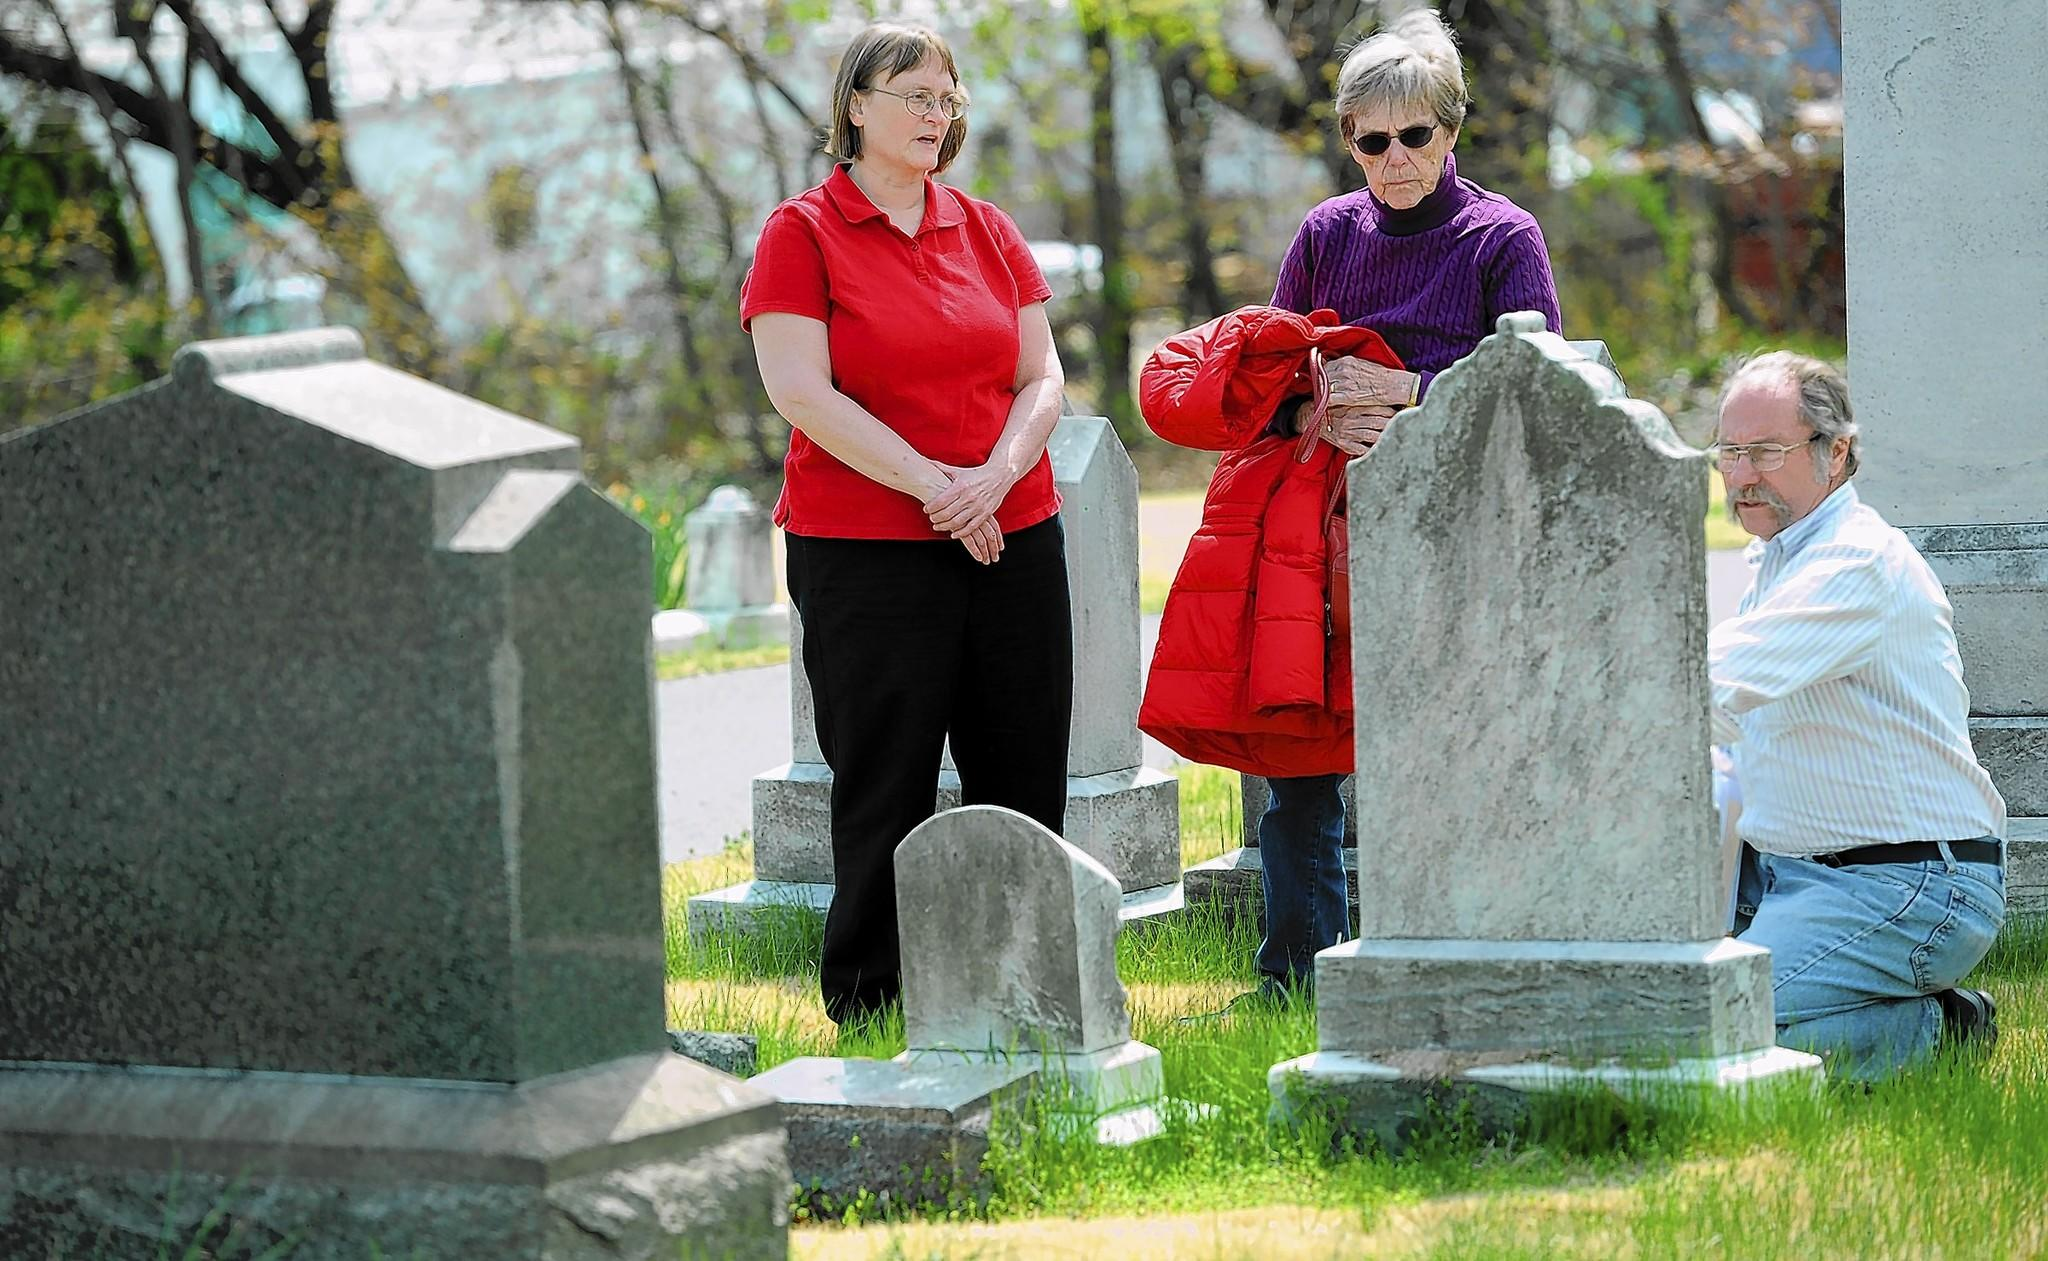 Chris Muldowney (from left), Jeanne Sears and Erik Nichols, members of the Lauraville Improvement Association, look at headstones as they walk through Immanuel Lutheran Cemetery.